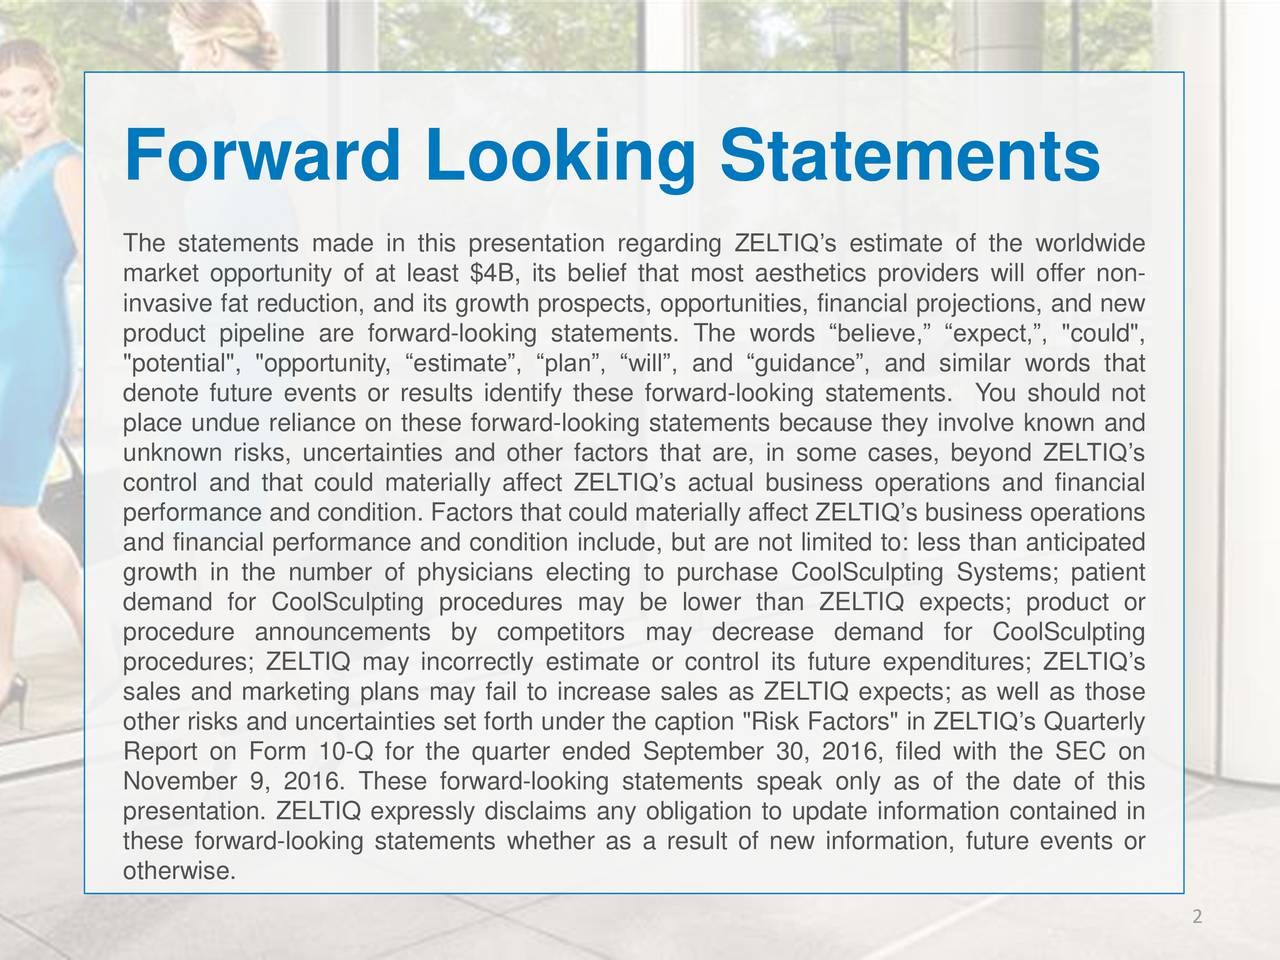 """The statements made in this presentation regarding ZELTIQs estimate of the worldwide market opportunity of at least $4B, its belief that most aesthetics providers will offer non- invasive fat reduction, and its growth prospects, opportunities, financial projections, and new product pipeline are forward-looking statements. The words believe, expect,, """"could"""", """"potential"""", """"opportunity, estimate, plan, will, and guidance, and similar words that denote future events or results identify these forward-looking statements. You should not place undue reliance on these forward-looking statements because they involve known and unknown risks, uncertainties and other factors that are, in some cases, beyond ZELTIQs control and that could materially affect ZELTIQs actual business operations and financial performance and condition. Factors that could materially affect ZELTIQs business operations and financial performance and condition include, but are not limited to: less than anticipated growth in the number of physicians electing to purchase CoolSculpting Systems; patient demand for CoolSculpting procedures may be lower than ZELTIQ expects; product or procedure announcements by competitors may decrease demand for CoolSculpting procedures; ZELTIQ may incorrectly estimate or control its future expenditures; ZELTIQs sales and marketing plans may fail to increase sales as ZELTIQ expects; as well as those other risks and uncertainties set forth under the caption """"Risk Factors"""" in ZELTIQs Quarterly Report on Form 10-Q for the quarter ended September 30, 2016, filed with the SEC on November 9, 2016. These forward-looking statements speak only as of the date of this presentation. ZELTIQ expressly disclaims any obligation to update information contained in these forward-looking statements whether as a result of new information, future events or otherwise. 2"""